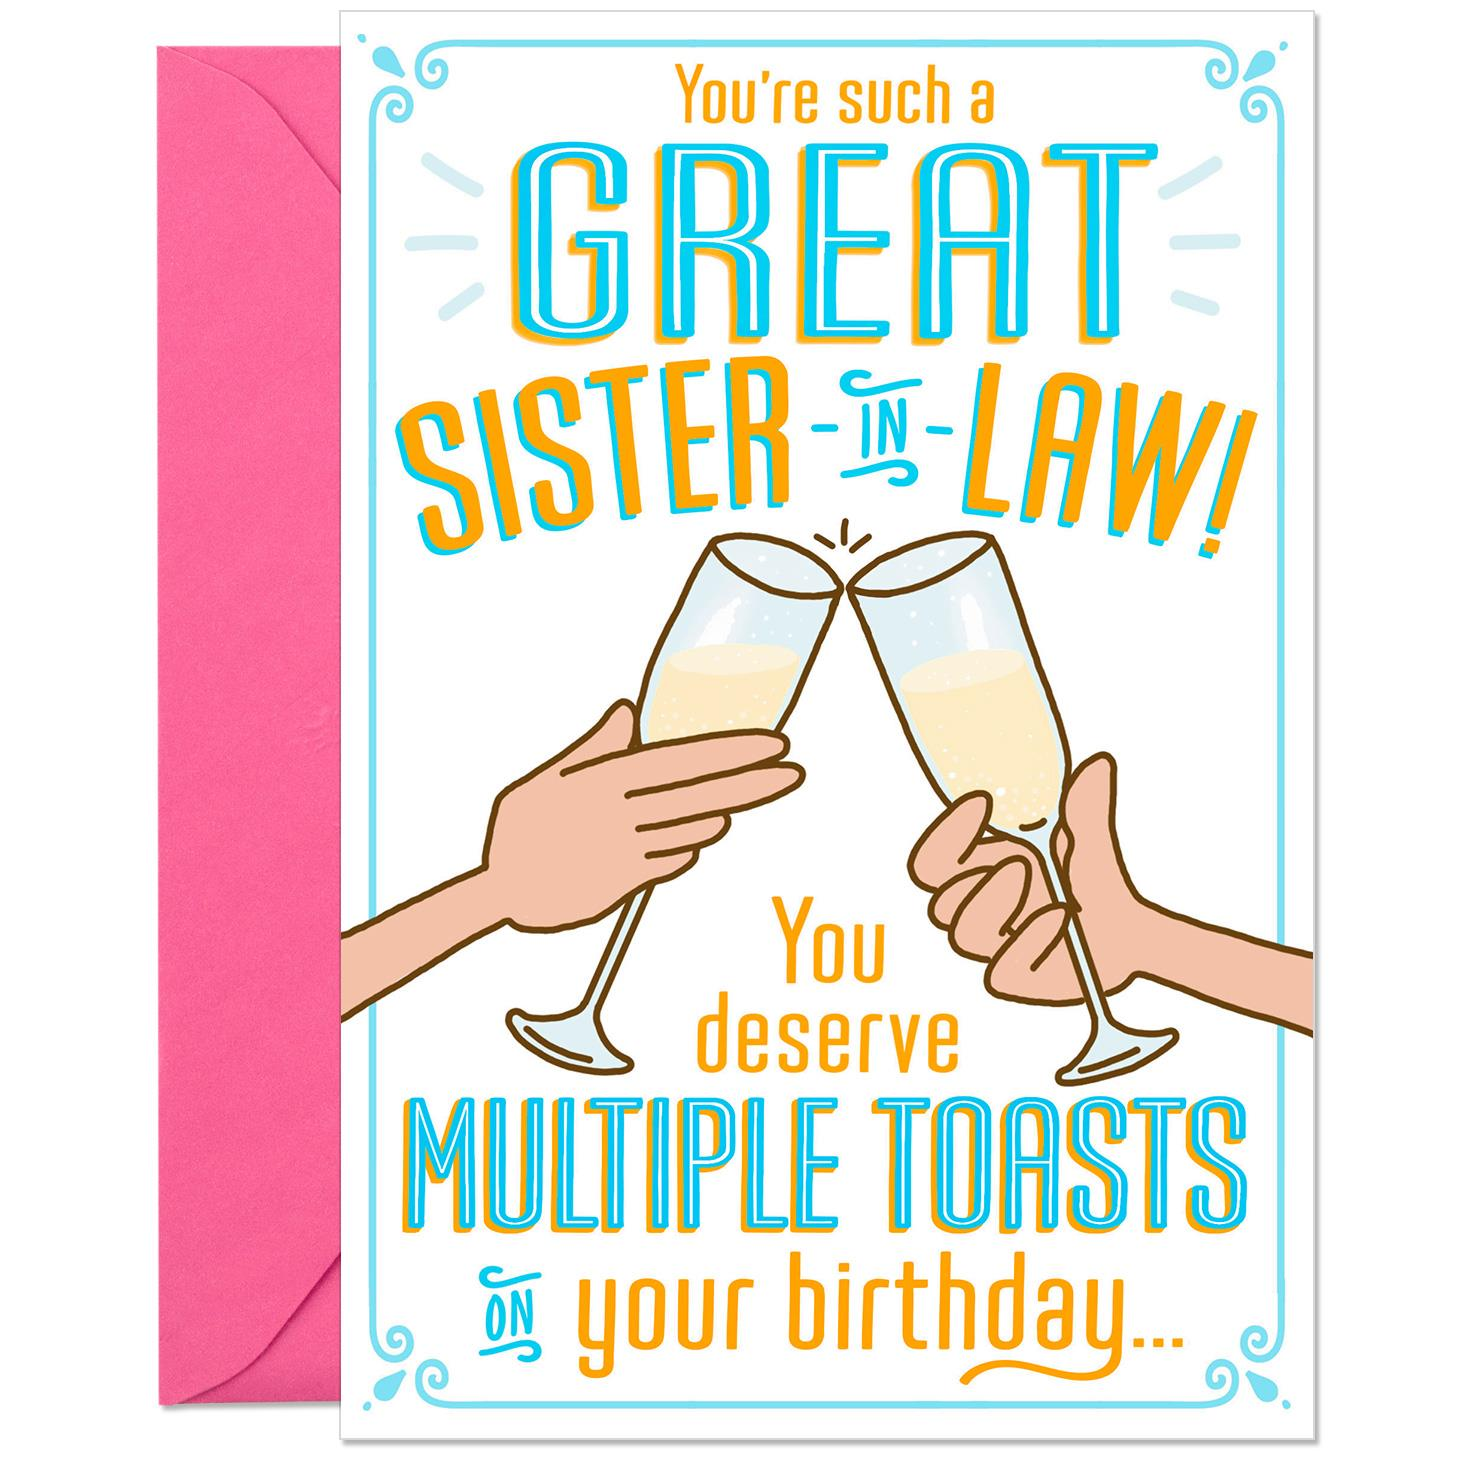 Multiple Toasts Funny Pop Up Birthday Card For Sister-in